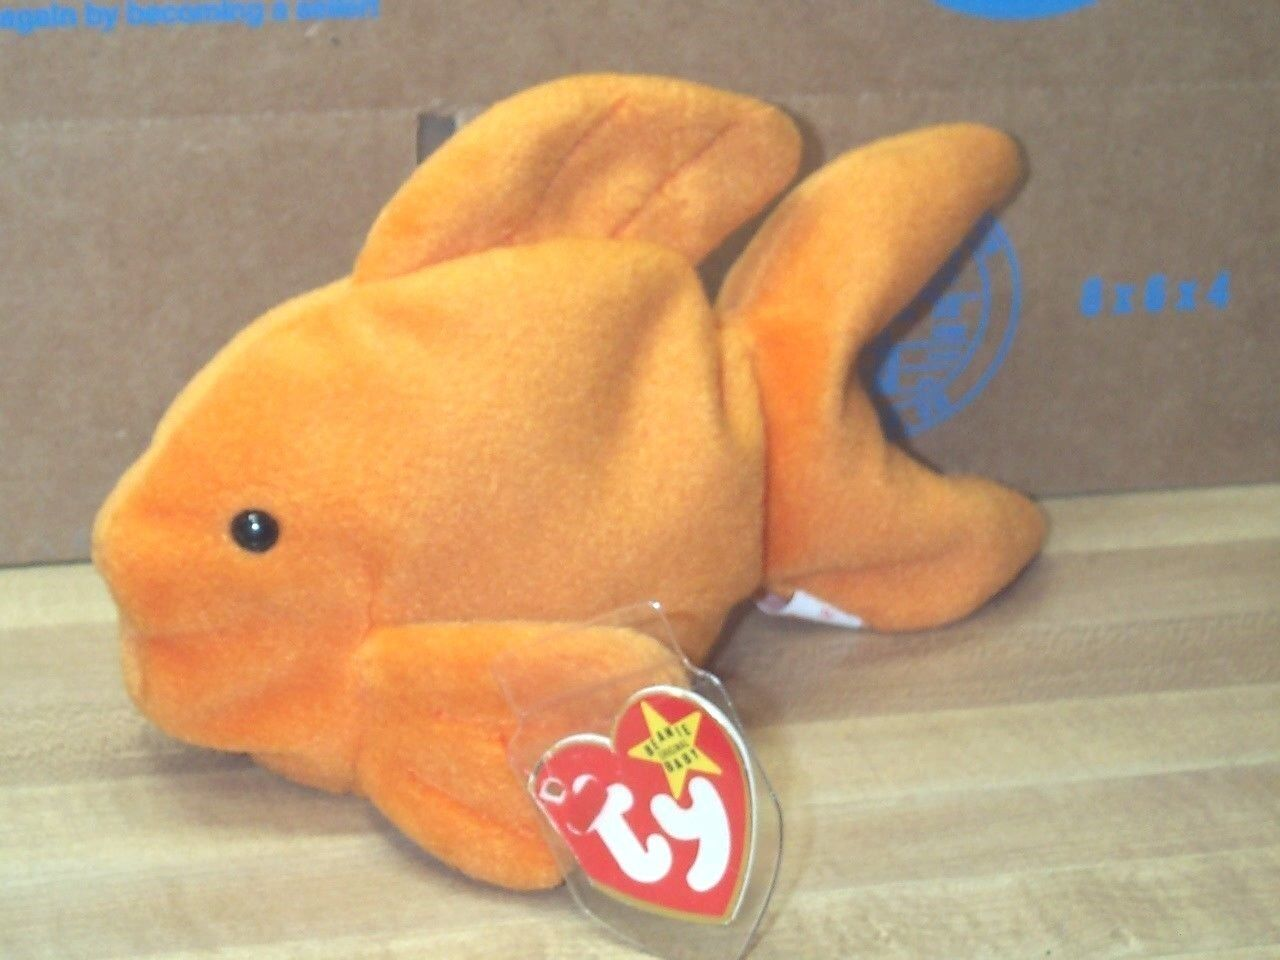 TY Beanie Baby Babies goldie goldfish Made in Korea 11-14-1994 PVC Pellets 4023